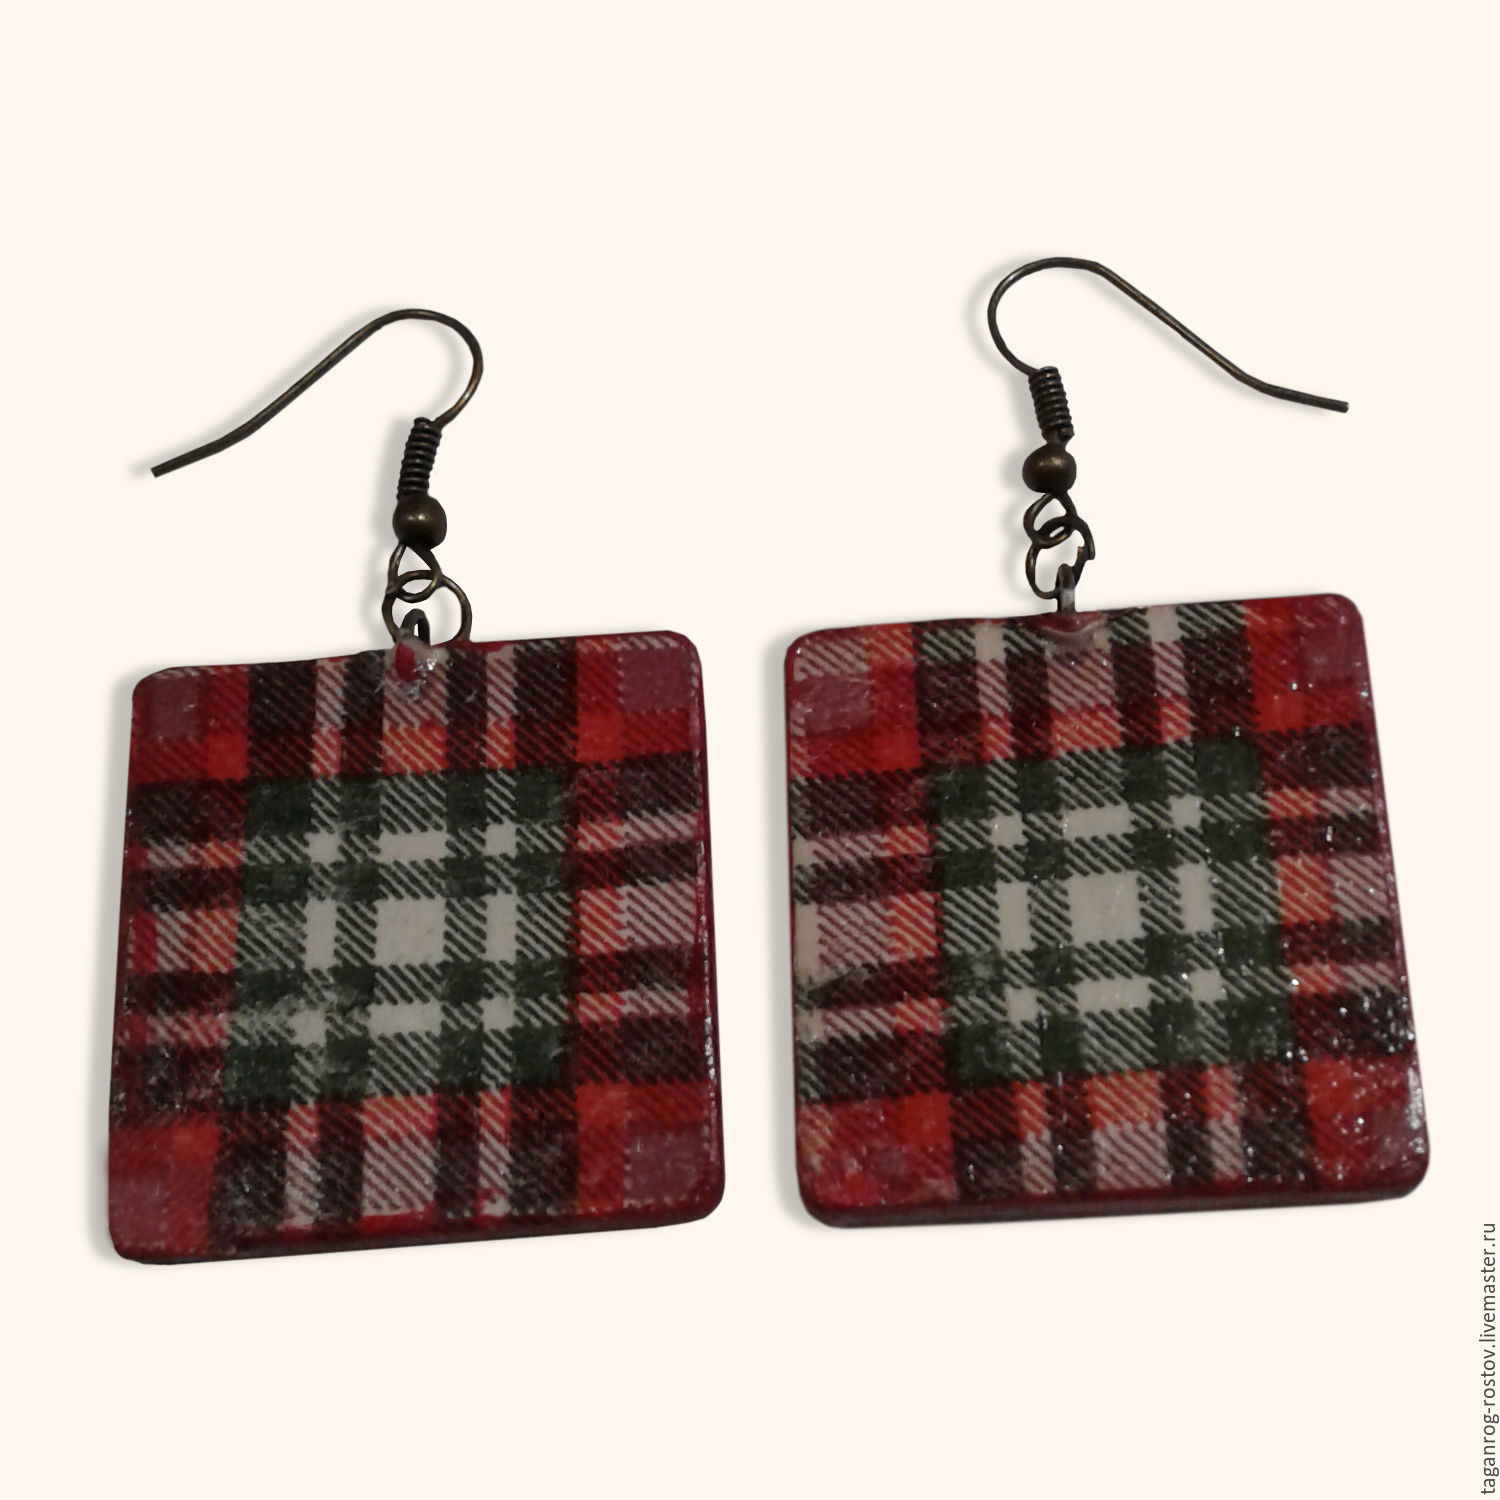 Fashion jewelry Earrings square plaid, Earrings, Taganrog,  Фото №1